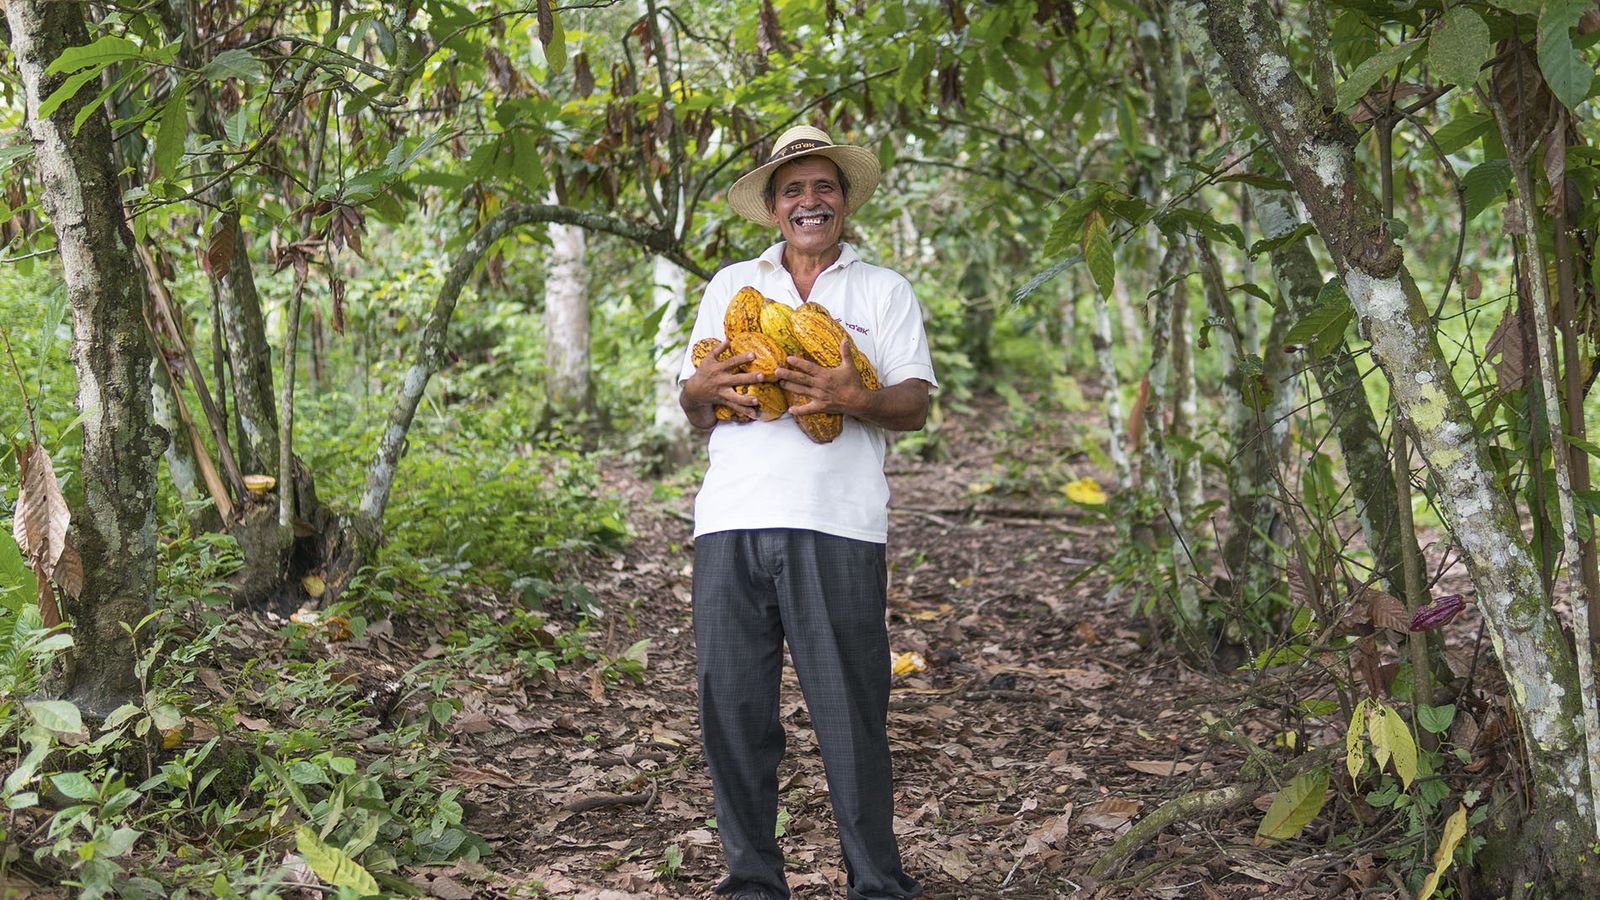 Farmer Divino at Piedra de Plata with armfuls of Ancient Nacional cacao pods